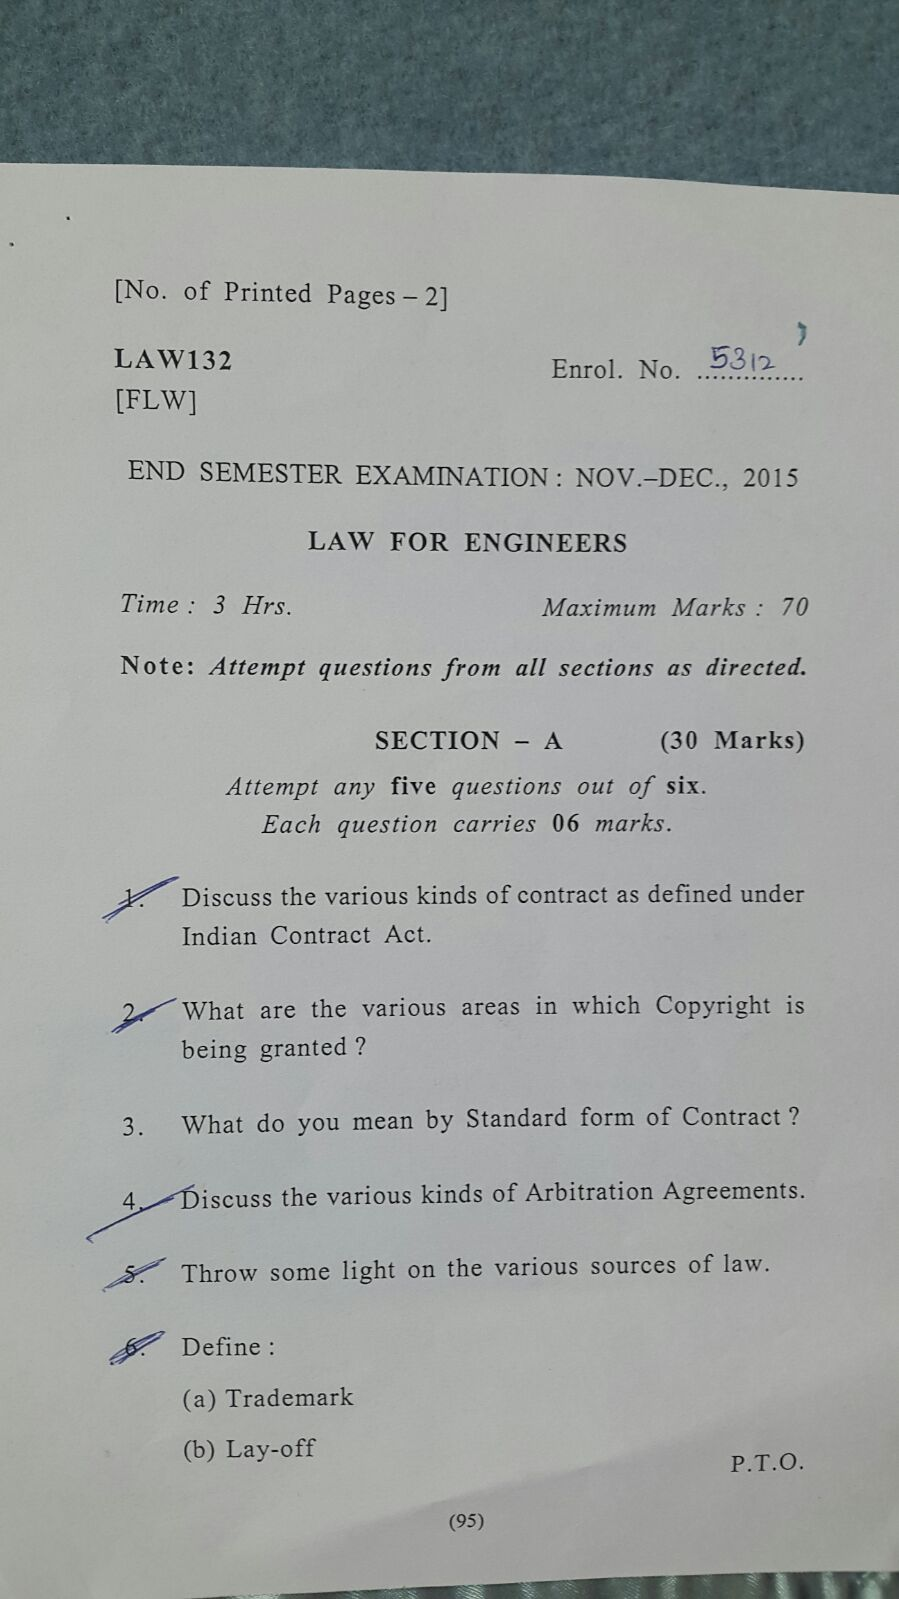 Amity law for engineers question paper 2015-law01.JPG